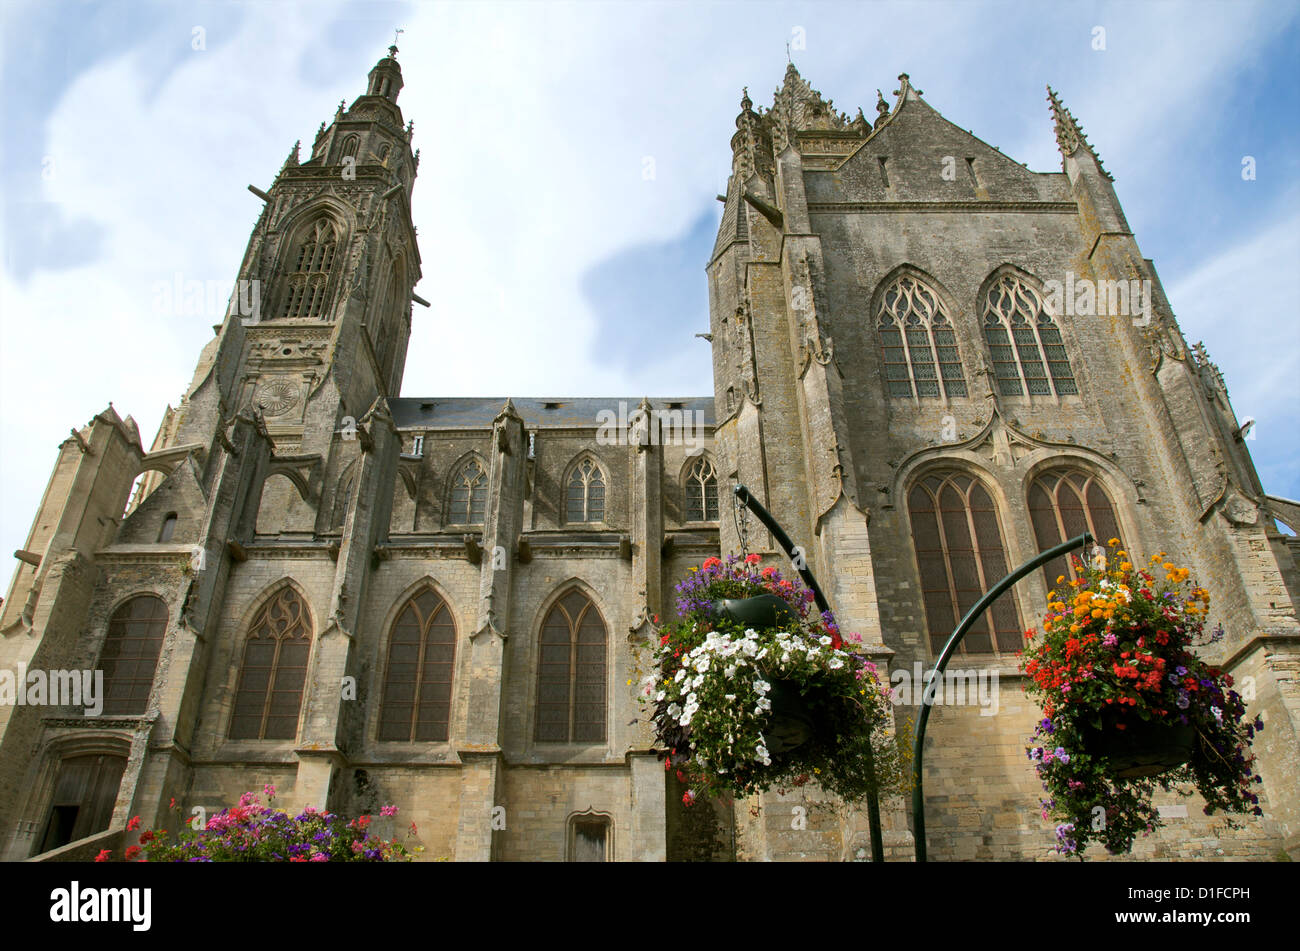 St. Peter church dating from the 15th century. with flowers, Coutances, Cotentin, Normandy, France, Europe - Stock Image